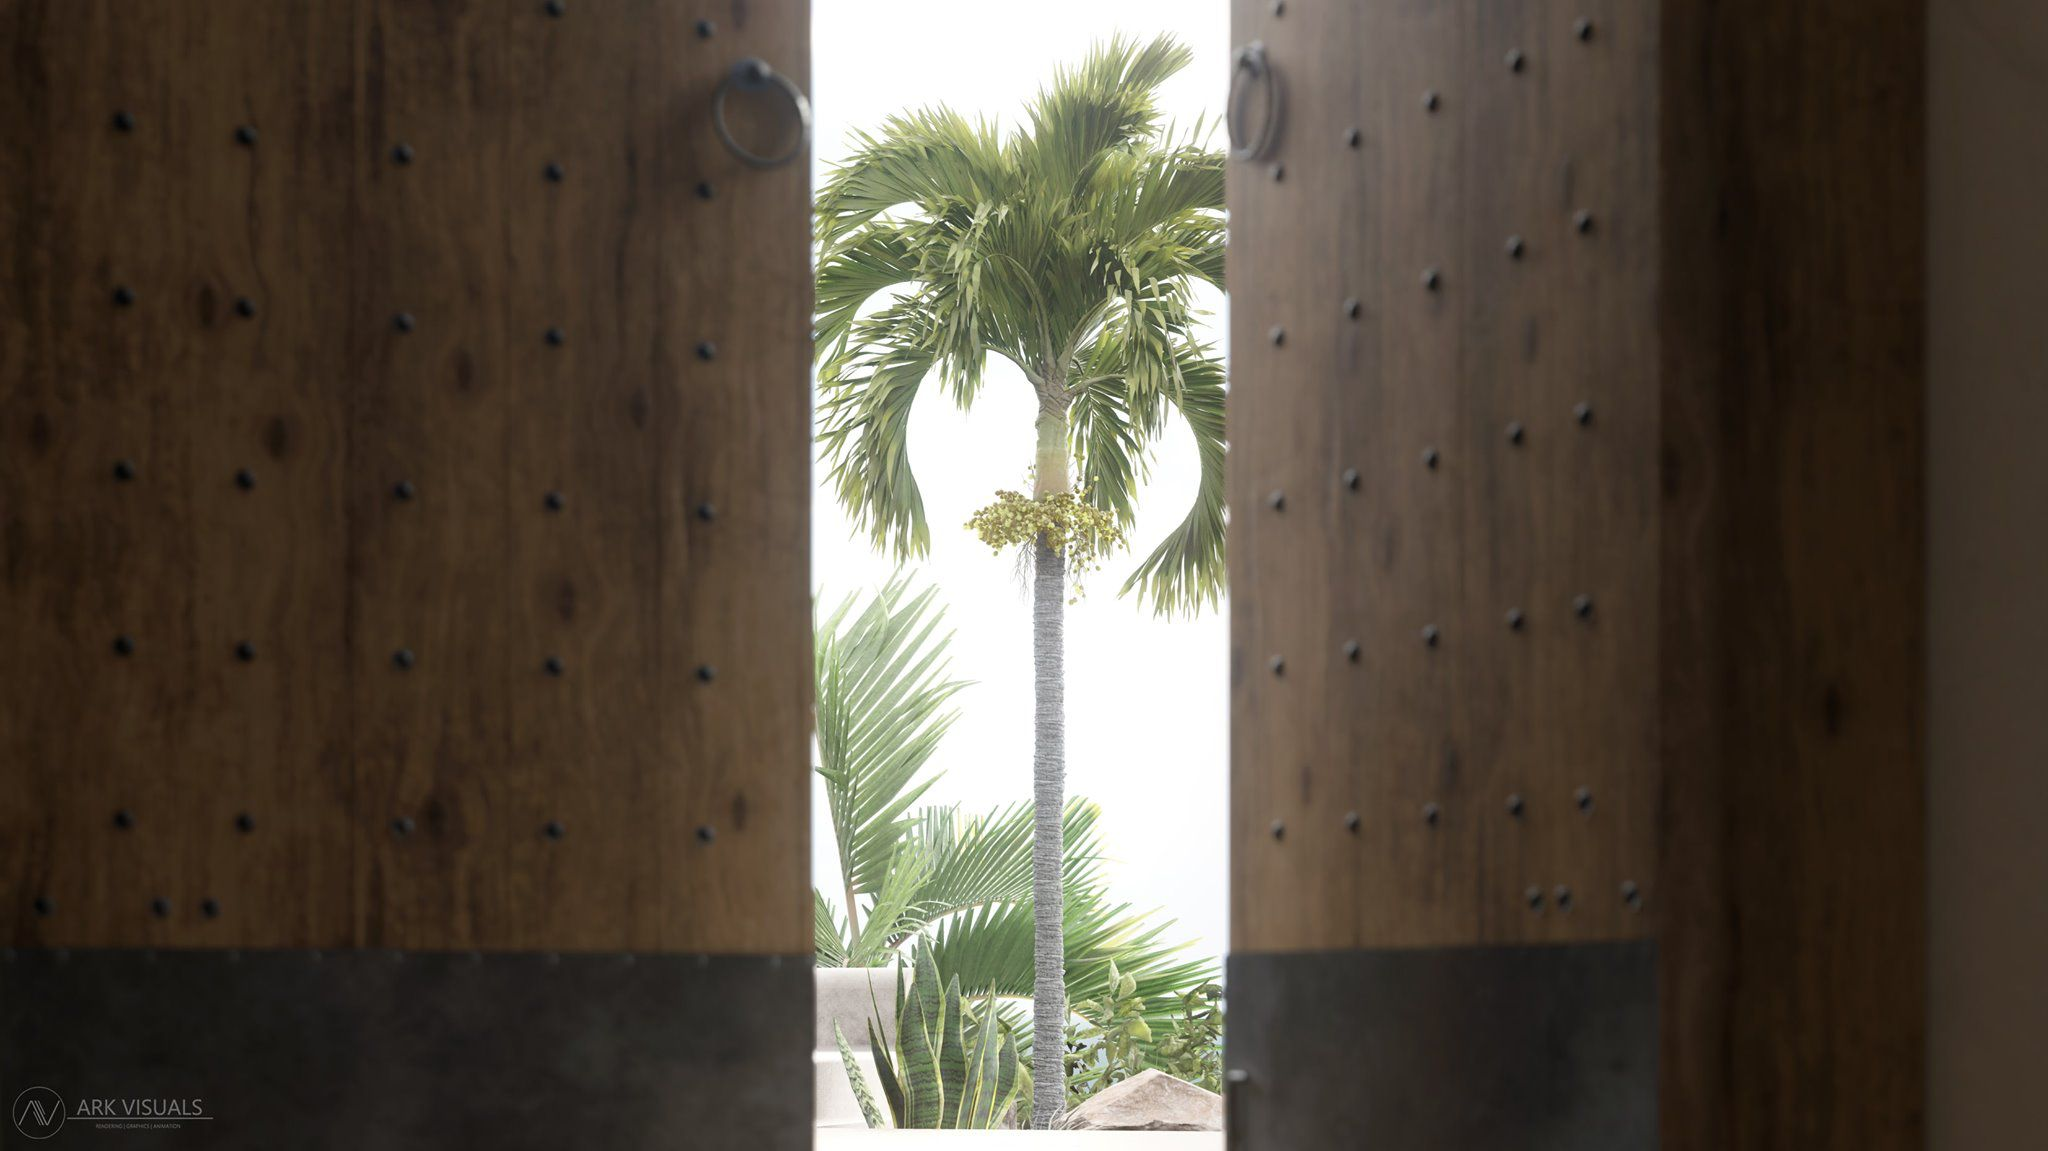 Opening the door to new possibilities in architectural rendering. Image by Ark Visuals from their project 'Scorpia.'